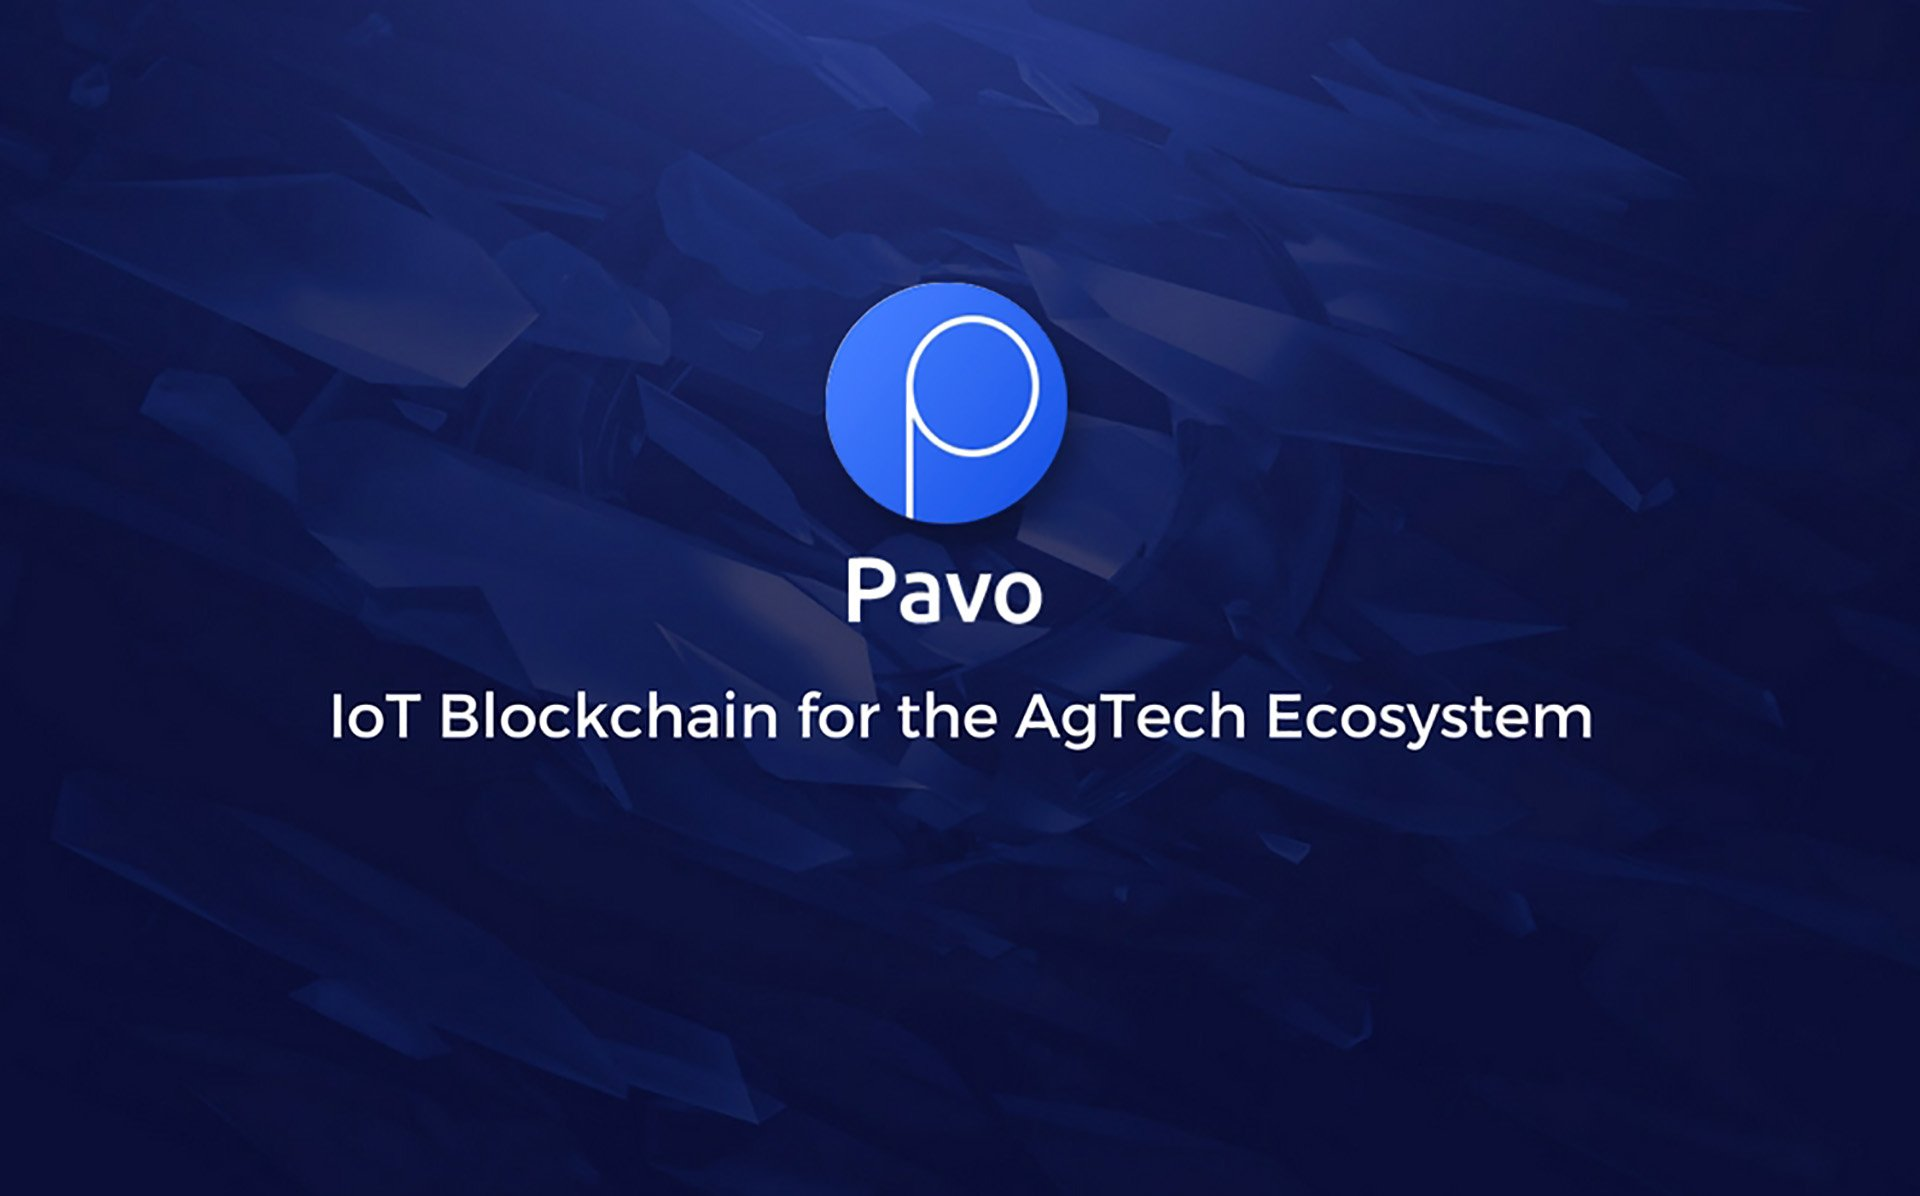 Prominent Blockchain Expert and Entrepreneur Keith Teare Joins Pavo's Advisory Board